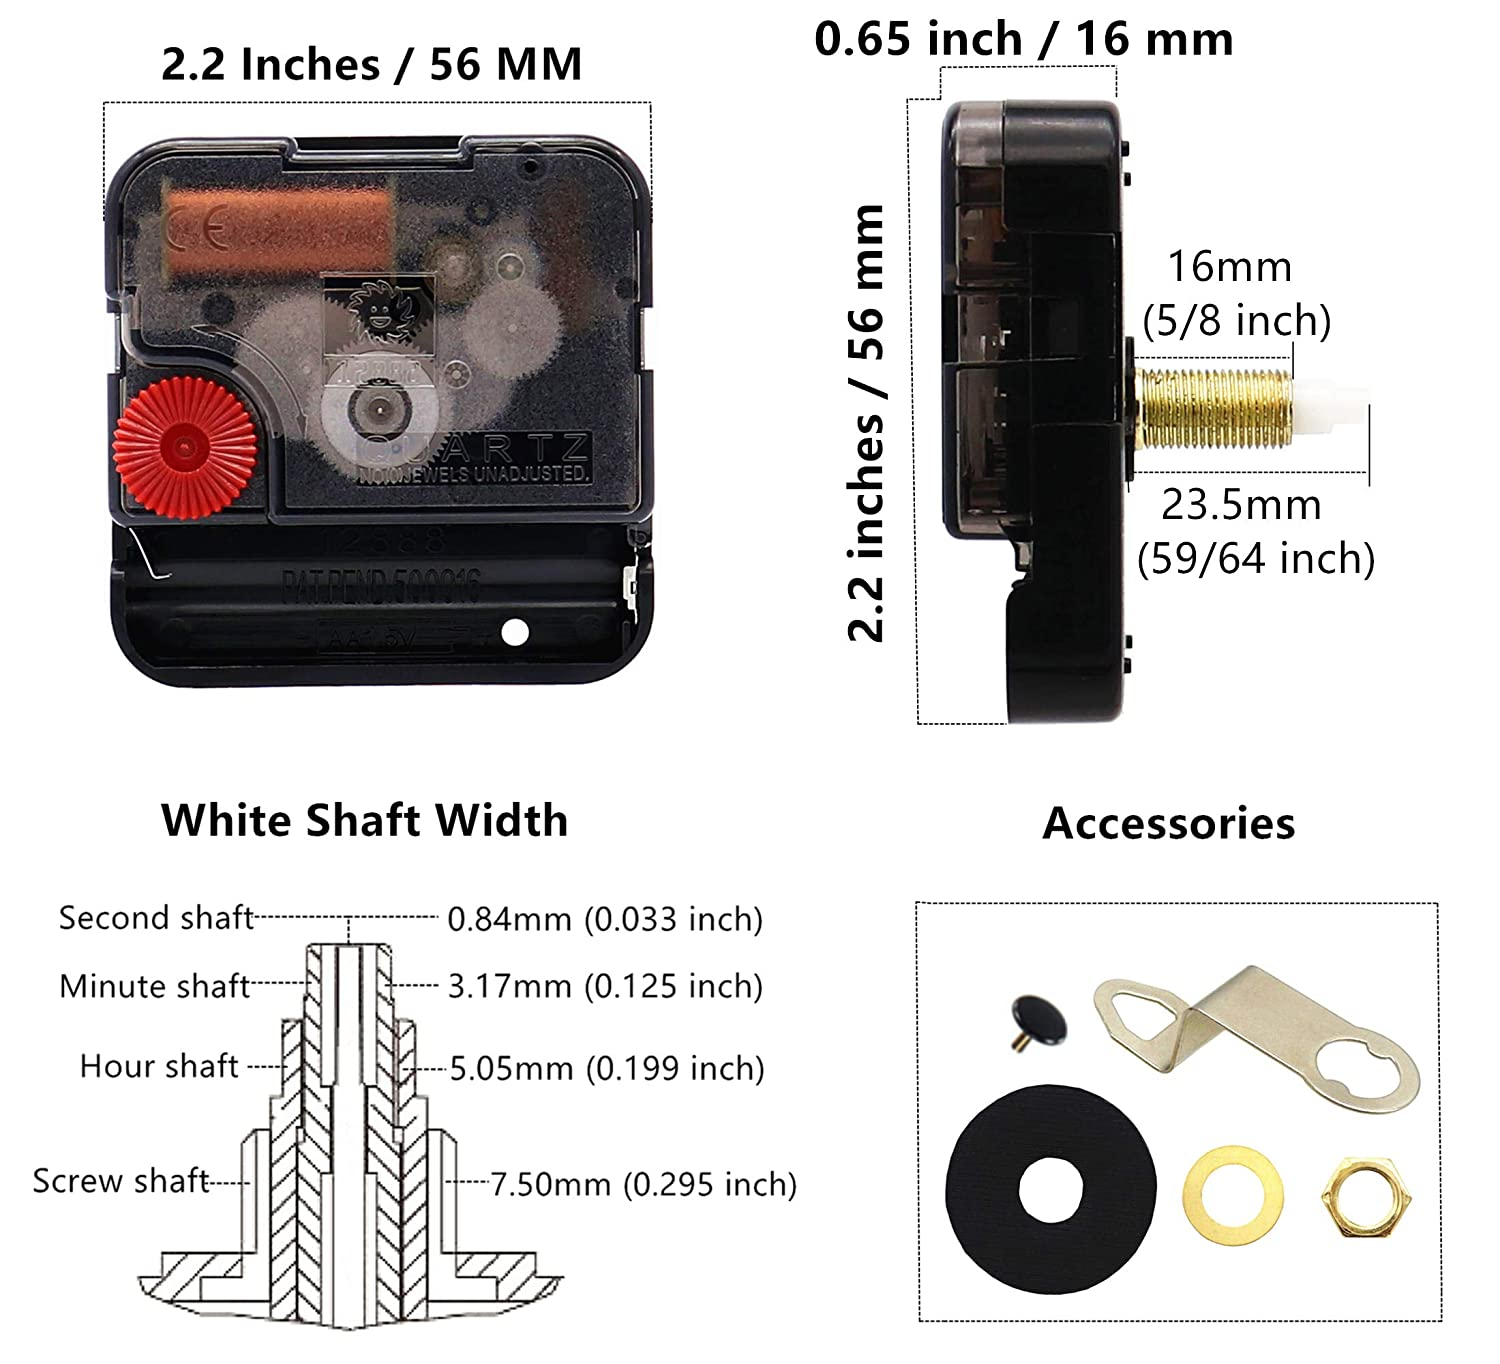 51//64 Inch Youngtown 12888 Quartz Wall Clock Movement Mechanism Battery Operated DIY Repair Parts Replacement 20mm 15//32 Inch Thread Length. Total Shaft Length 12mm